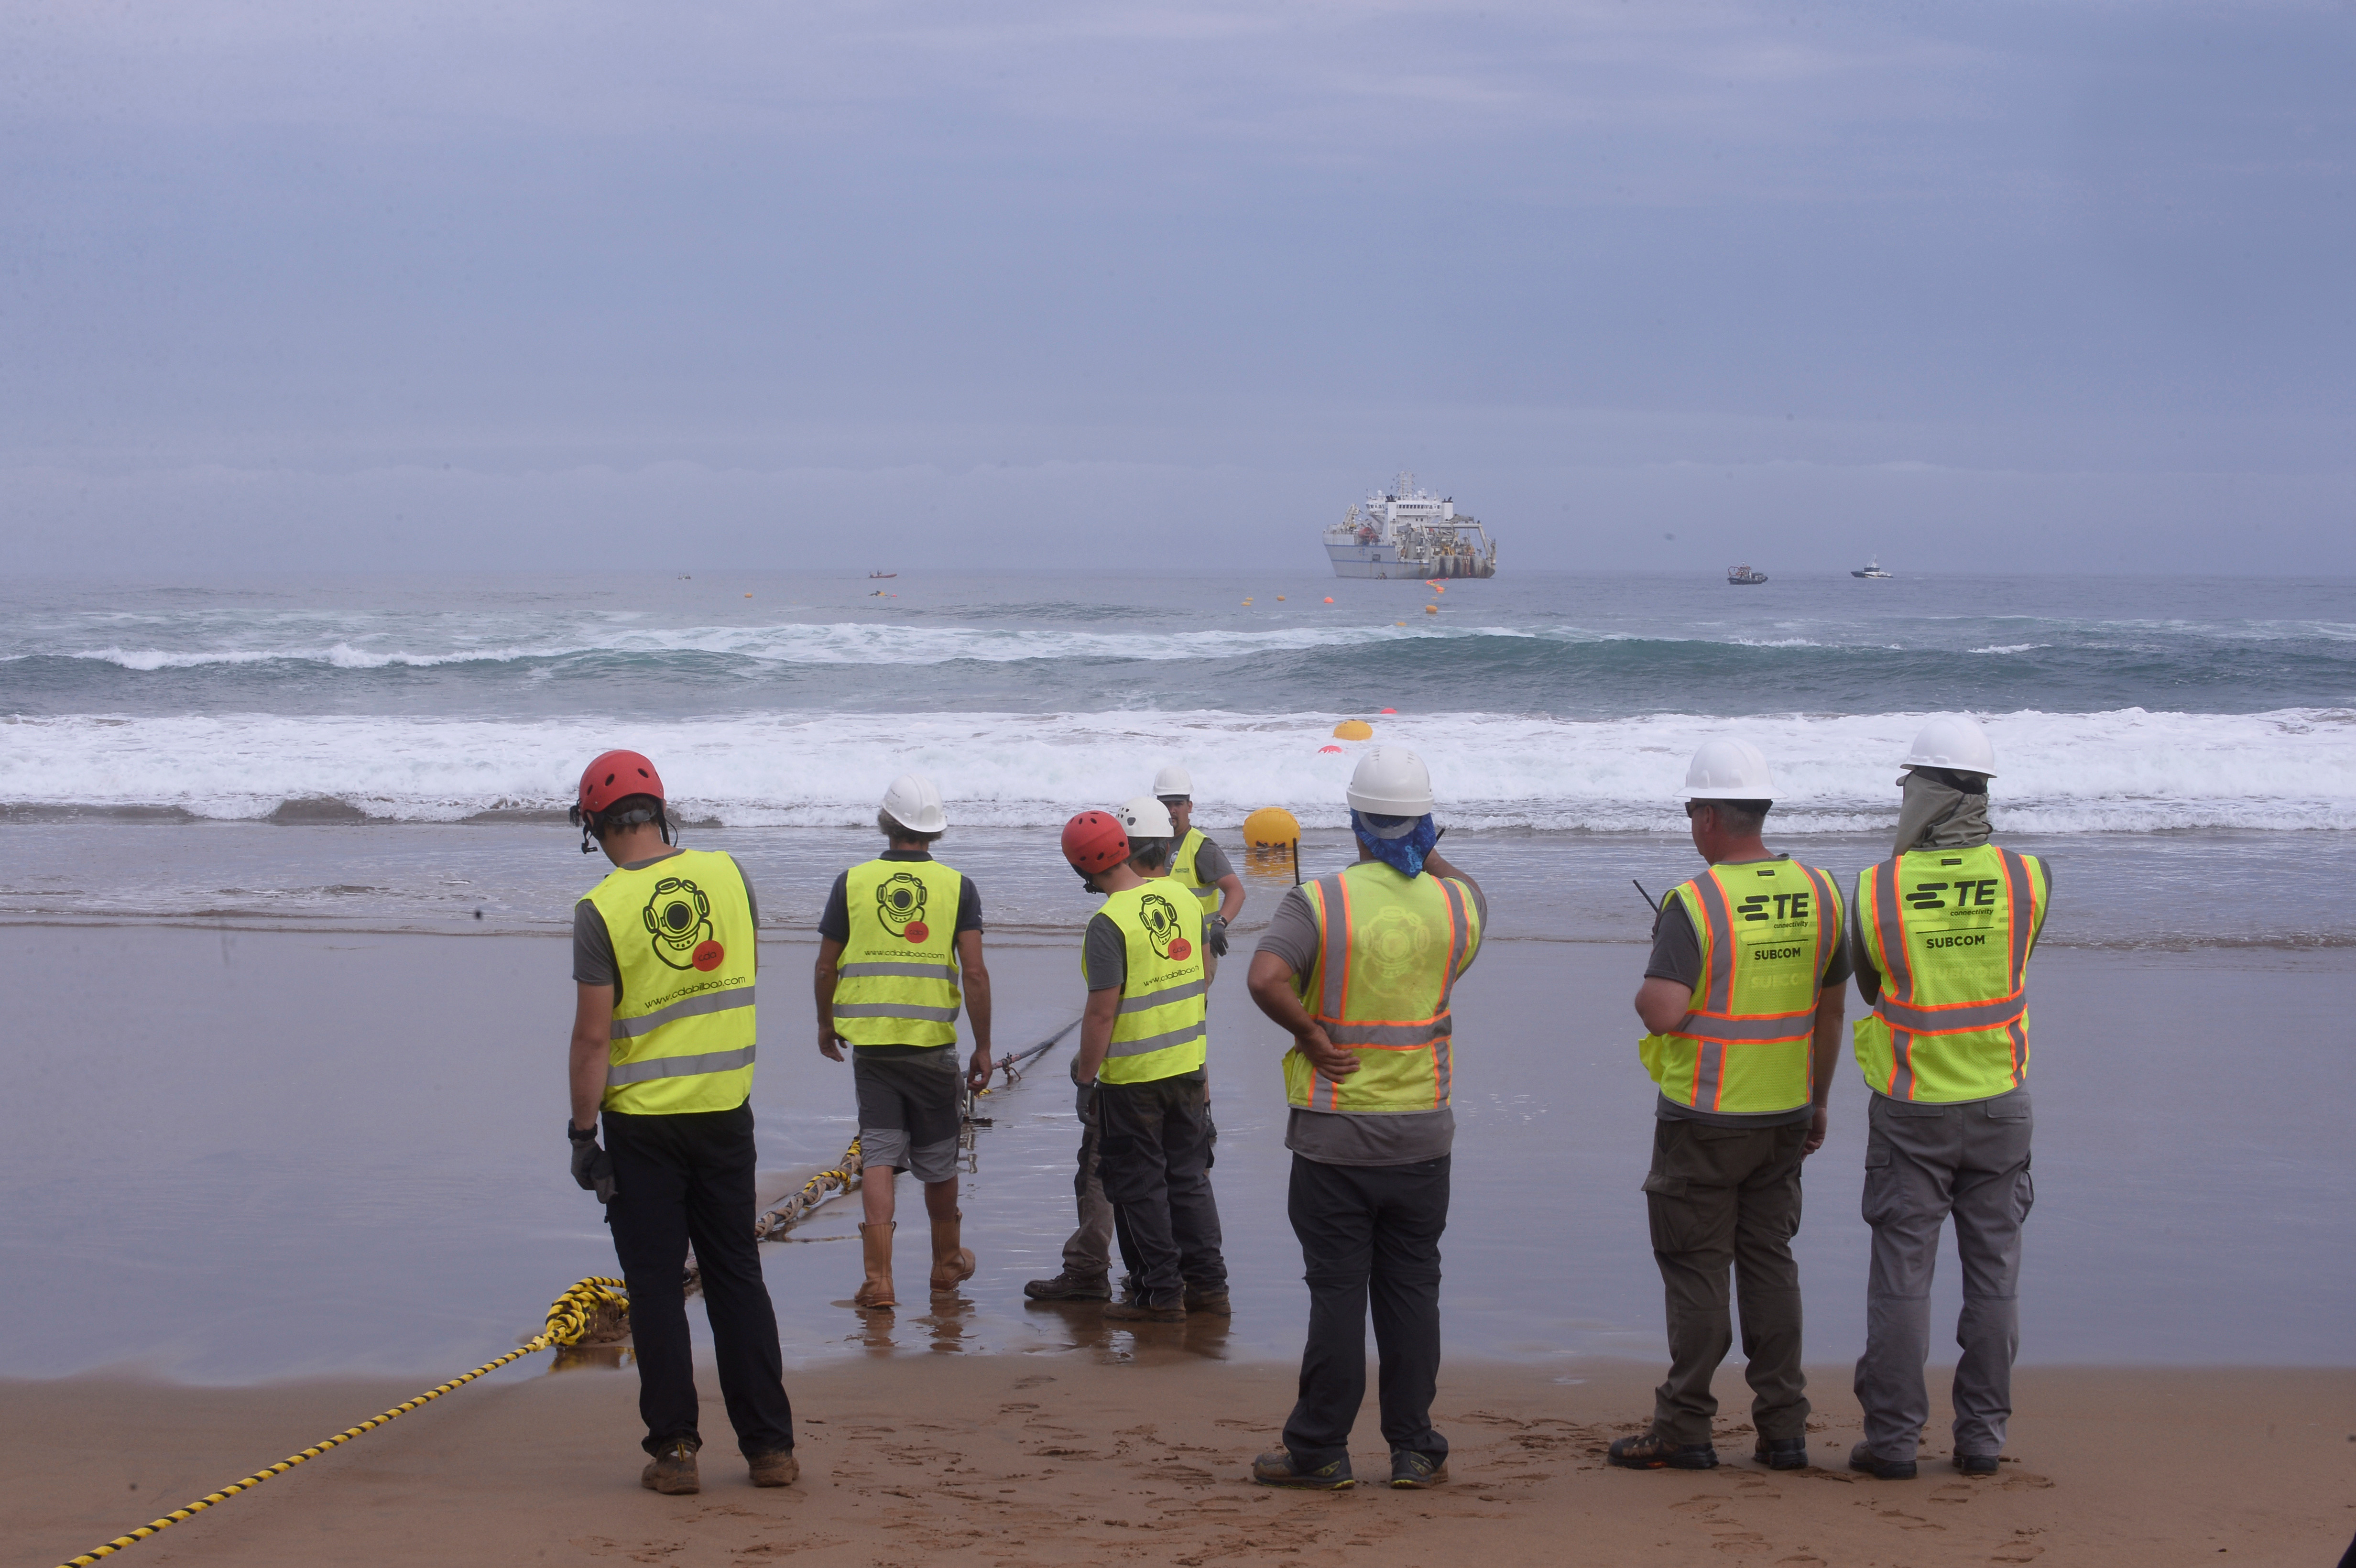 Workers observe a fiber optic cable from a cable laying ship at Arrietara beach, near Bilbao, northern Spain, June 13, 2017, as Facebook Inc. and Microsoft Corp. join forces to build an underwater fiber optic cable across the Atlantic Ocean, linking Europe and the USA. REUTERS/Vincent West - RC1F713B4F60